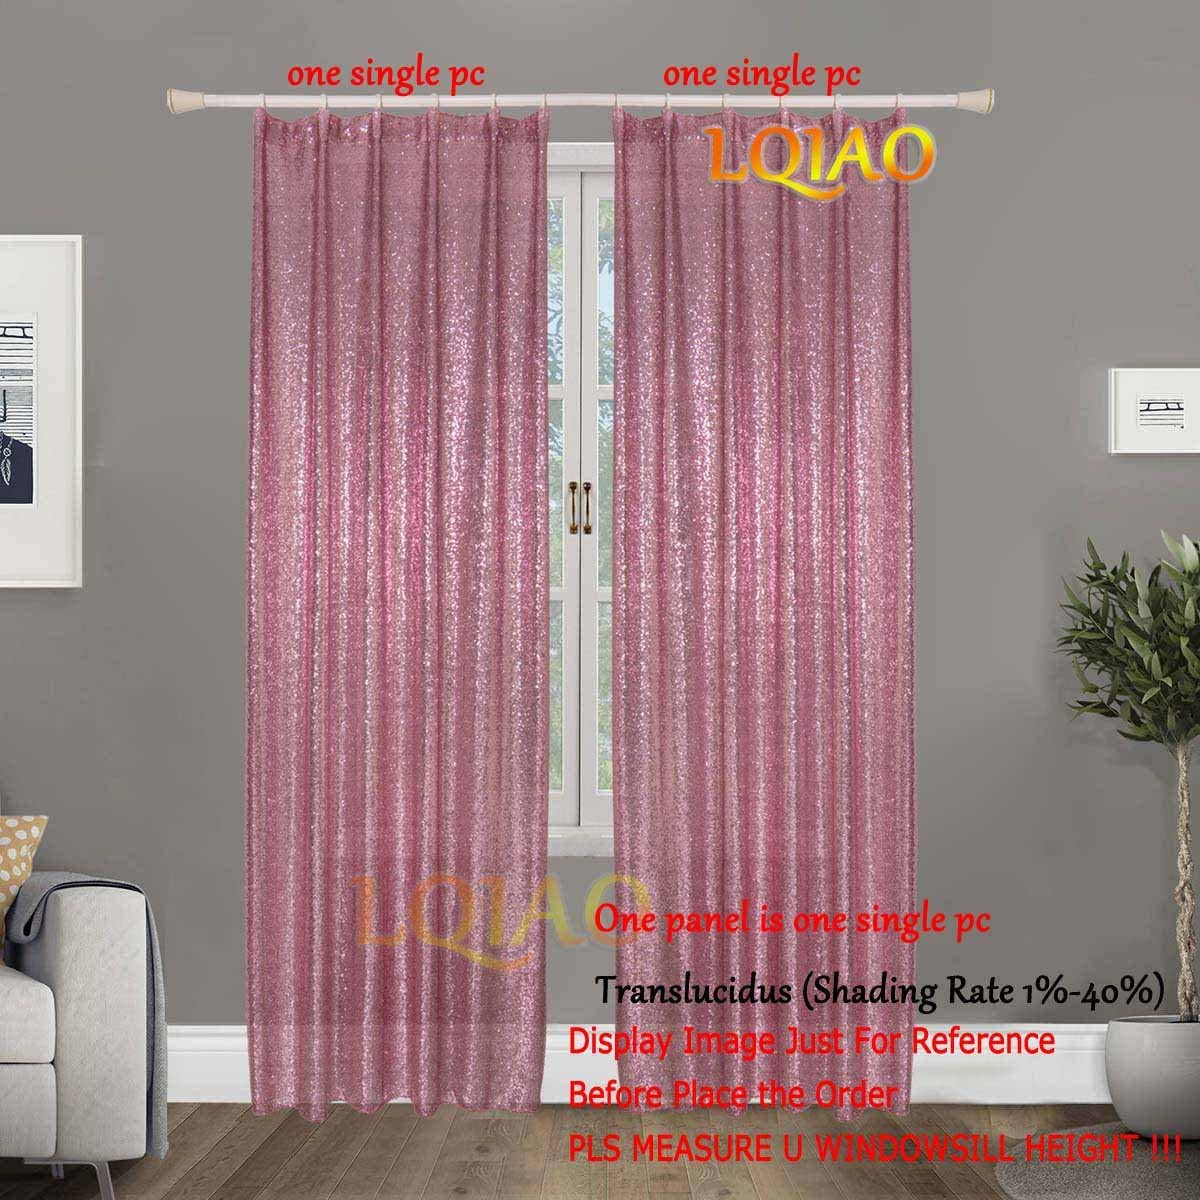 Pink Gold Sequin Curtain Panels 50x84in Light Curtain Shimmer Sequin Fabric for Door Window Curtain Home Textiles Window Treatments Pink Gold-One Panel